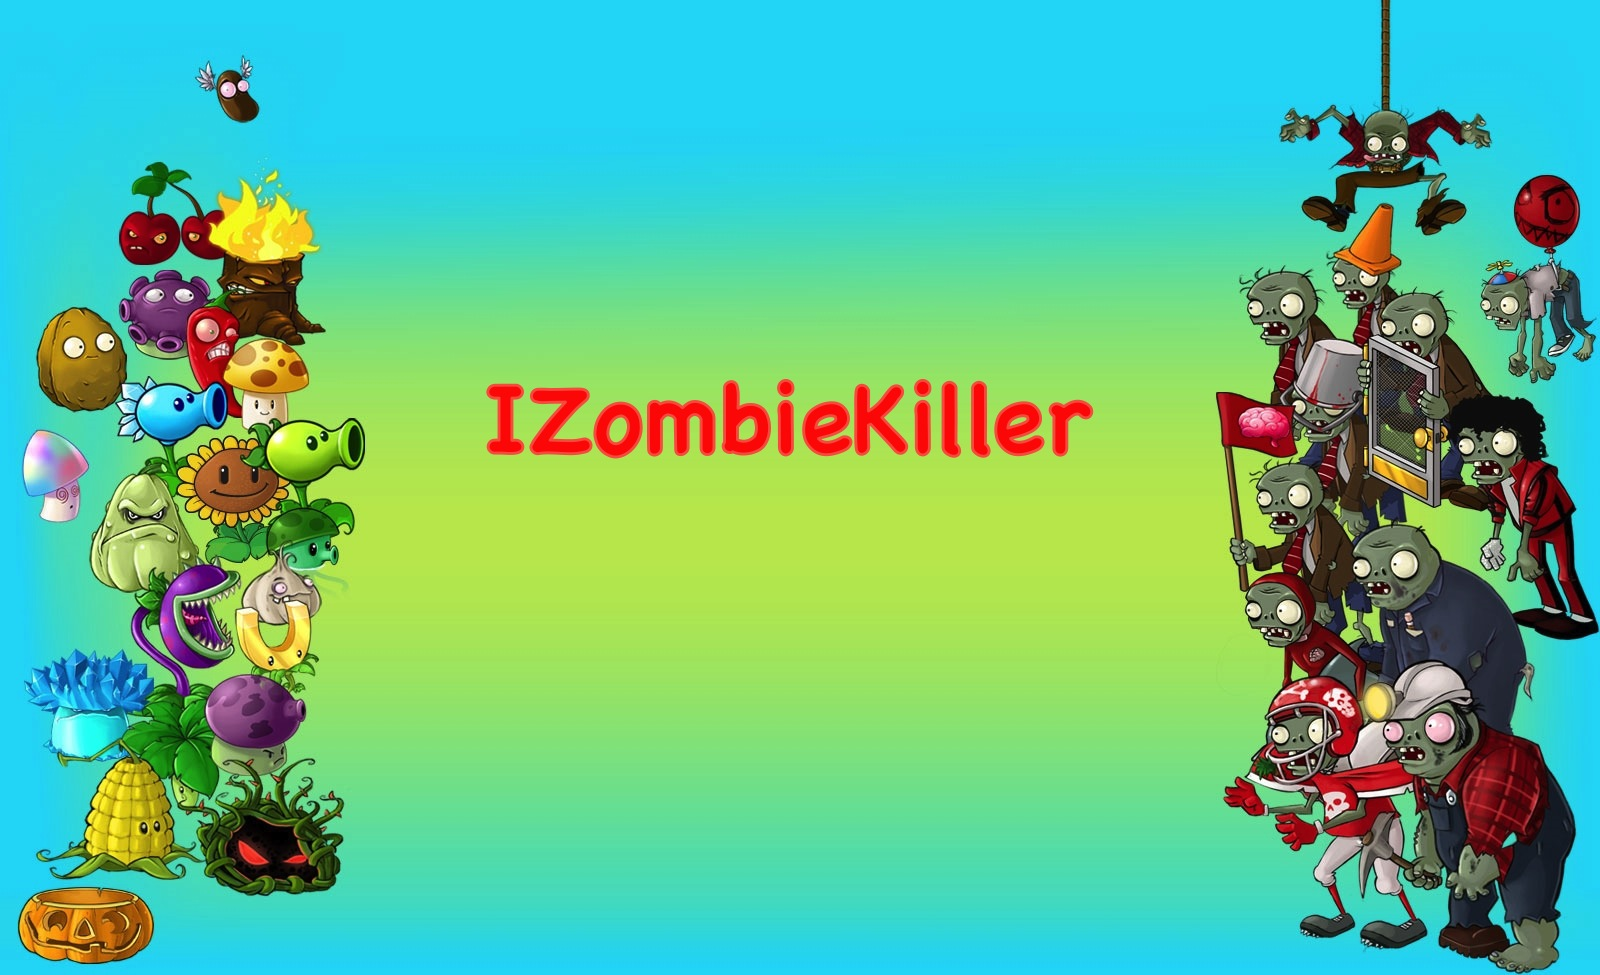 image - plants-vs-zombies-wallpaper-18 | plants vs. zombies wiki